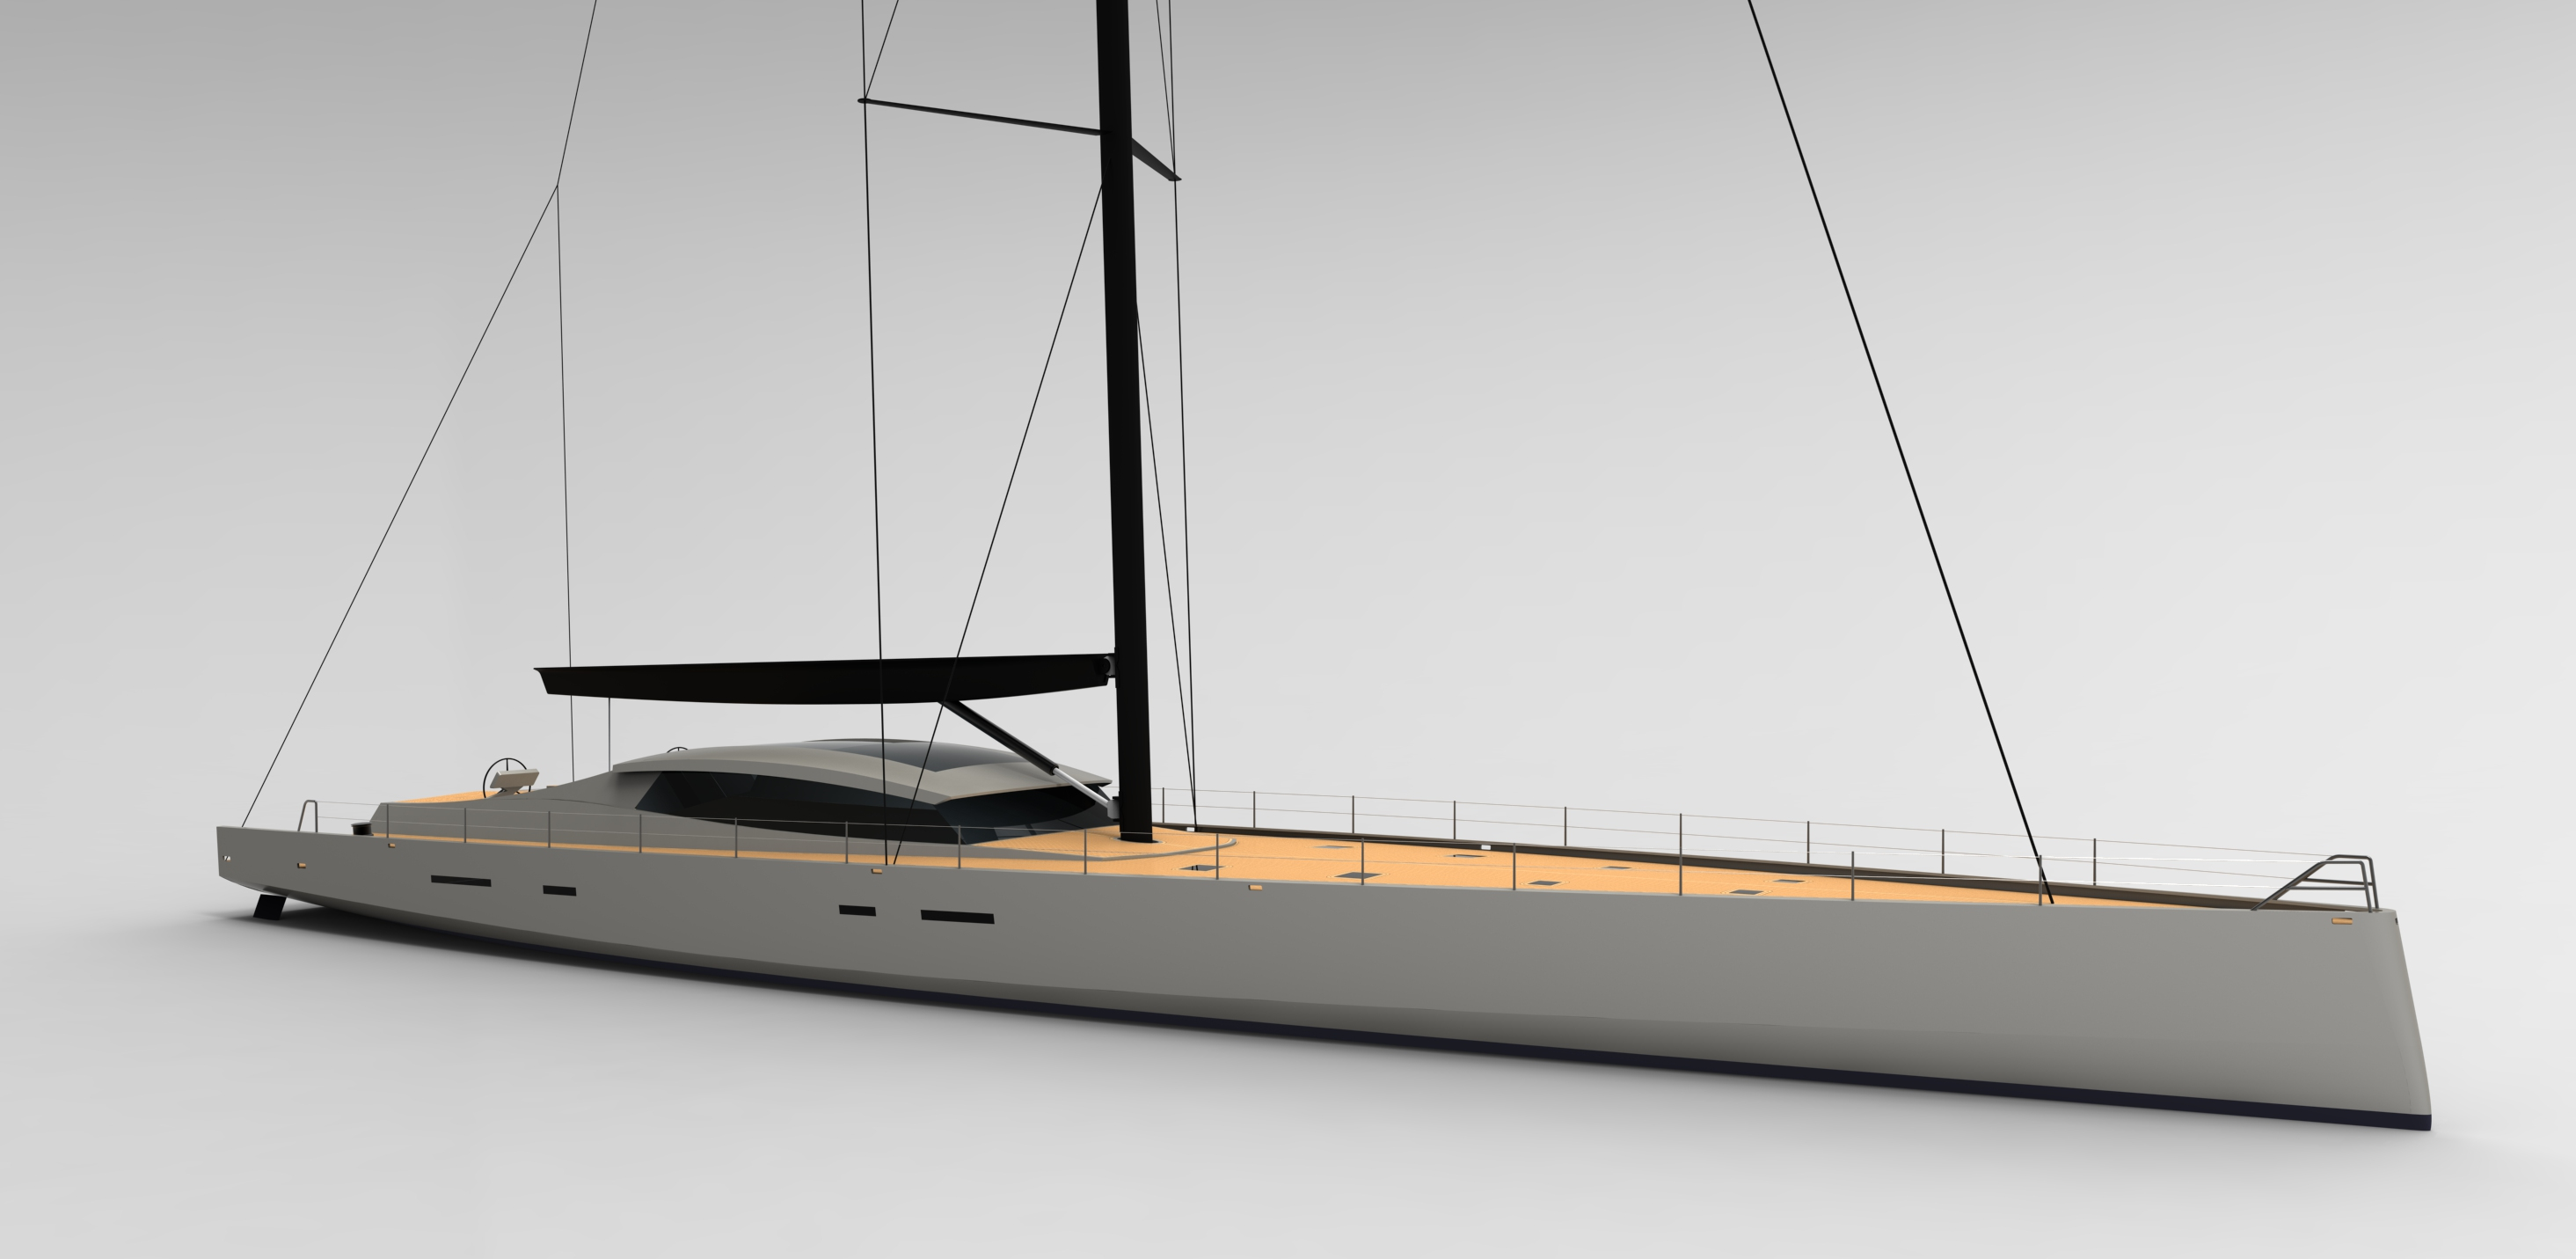 ocd 130 superyacht by owen clarke design to be unveiled at